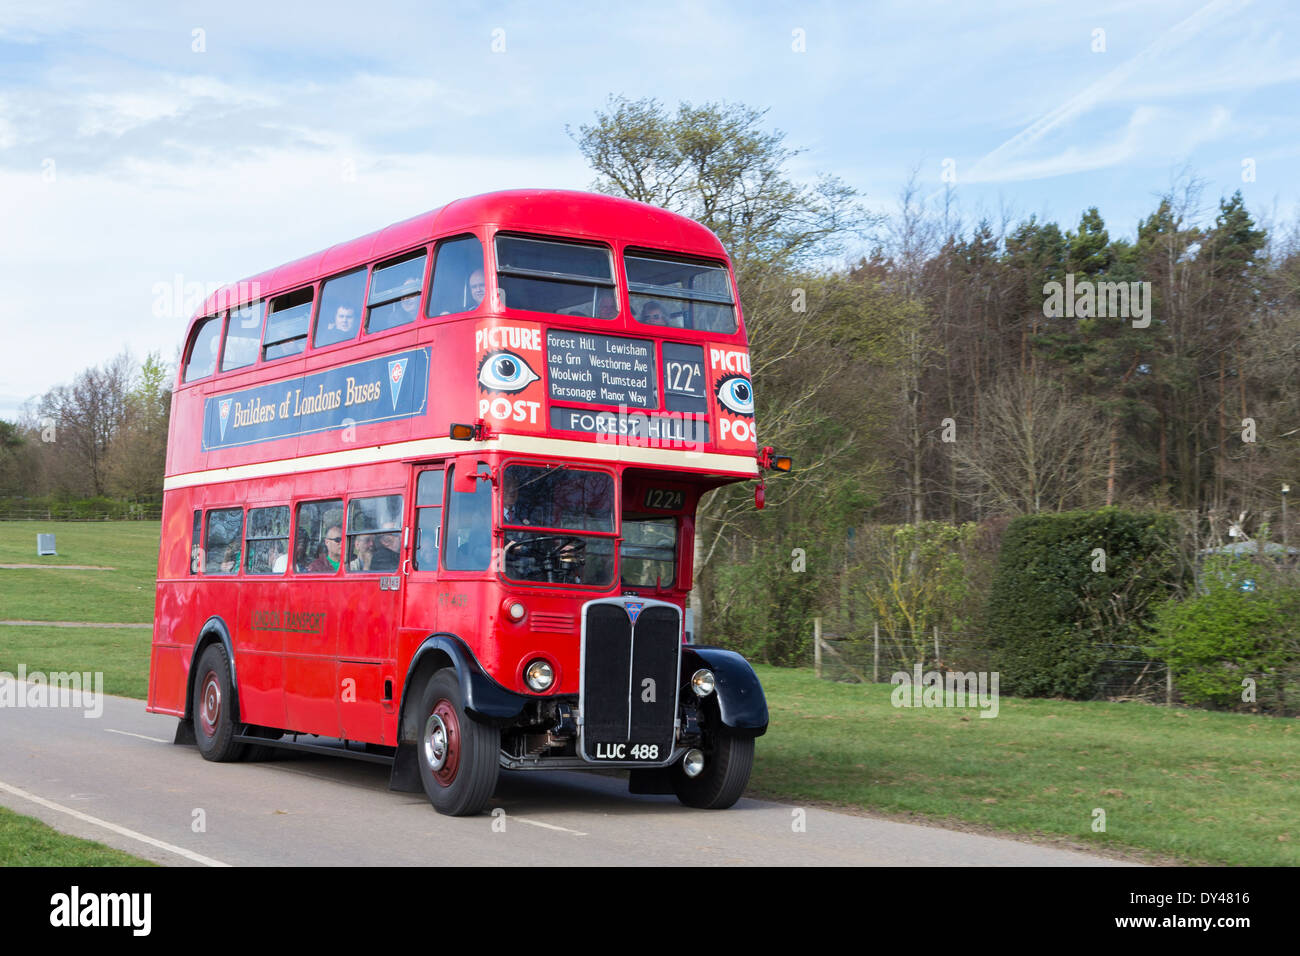 Classic Red Double Decker Routemaster Bus at Display of Heritage Vehicles - Stock Image